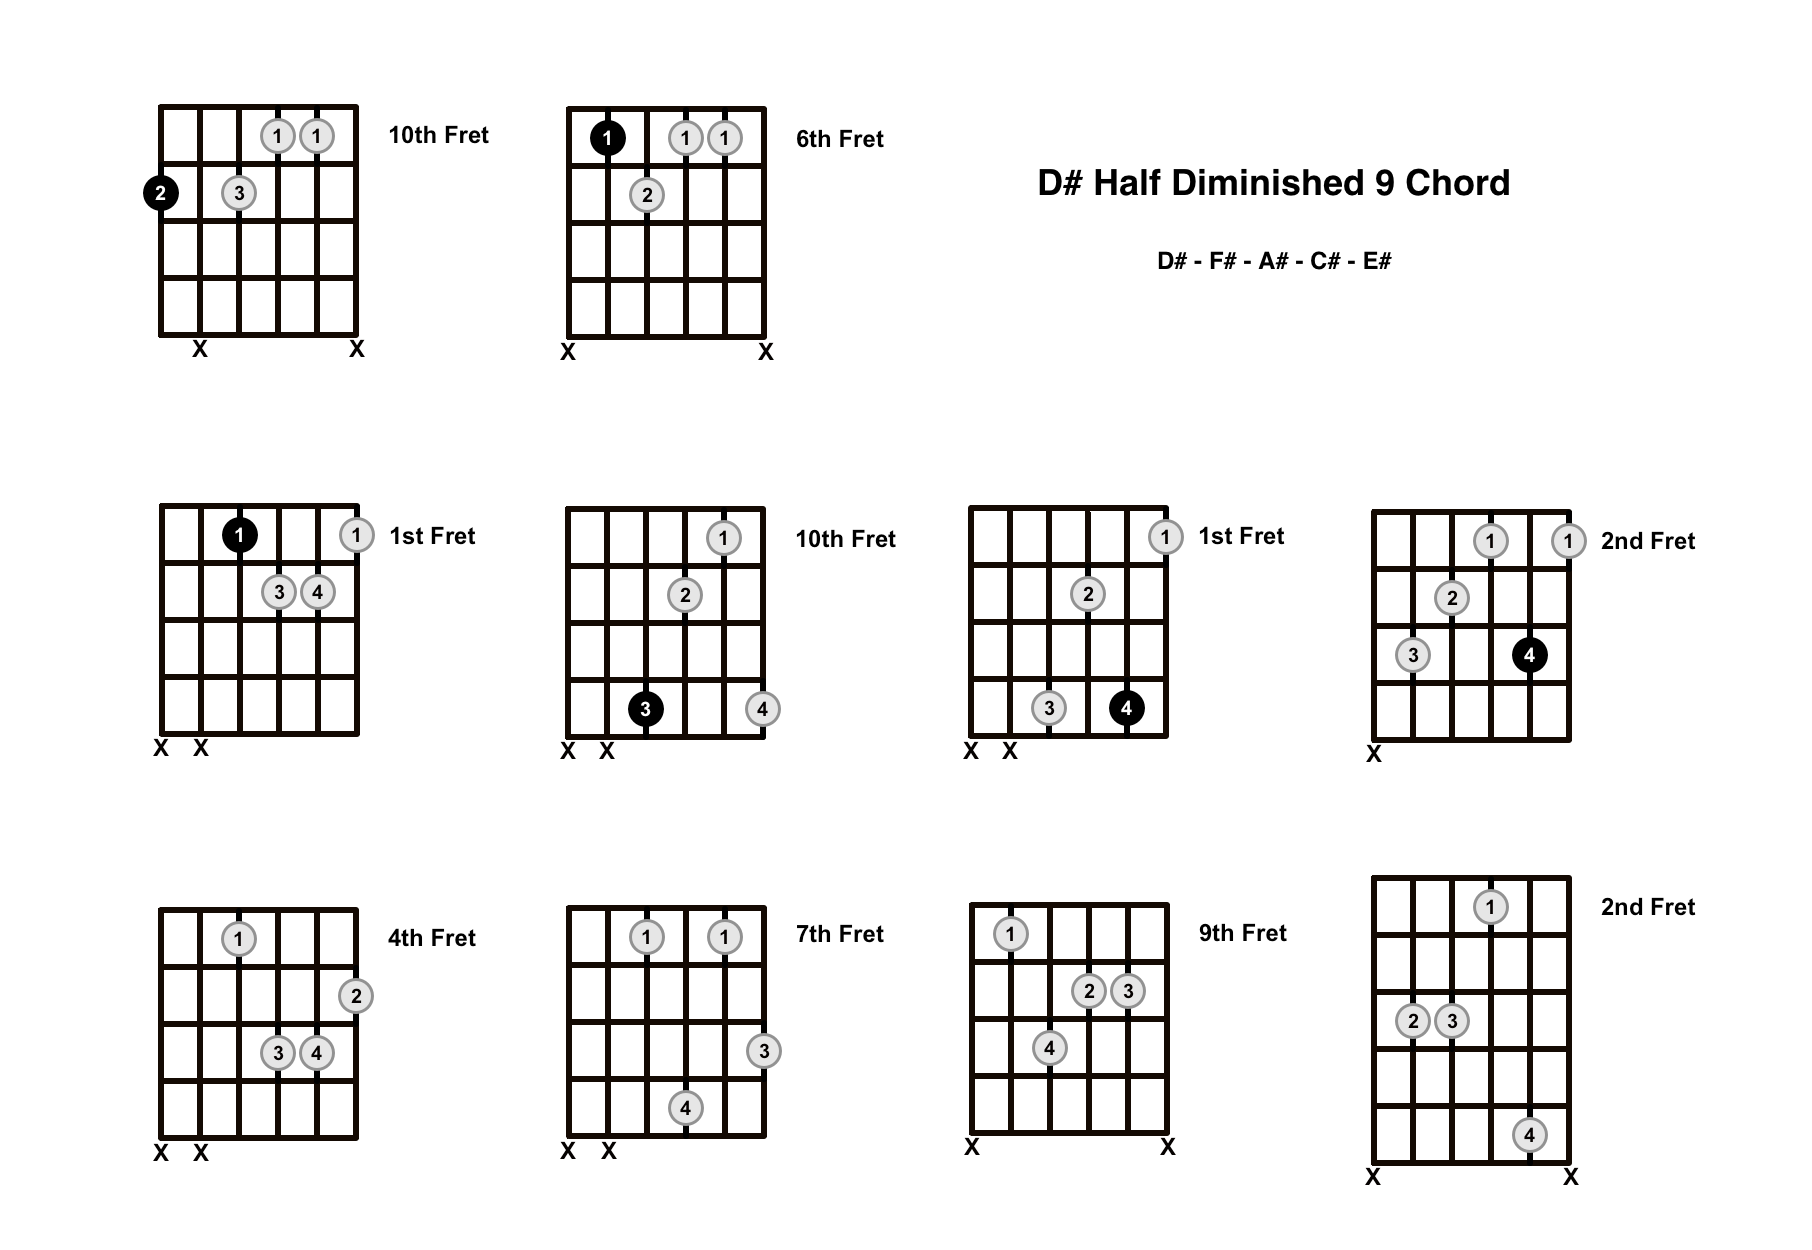 D#m9b5 Chord On The Guitar (D Sharp Half Diminished 9) – Diagrams, Finger Positions and Theory